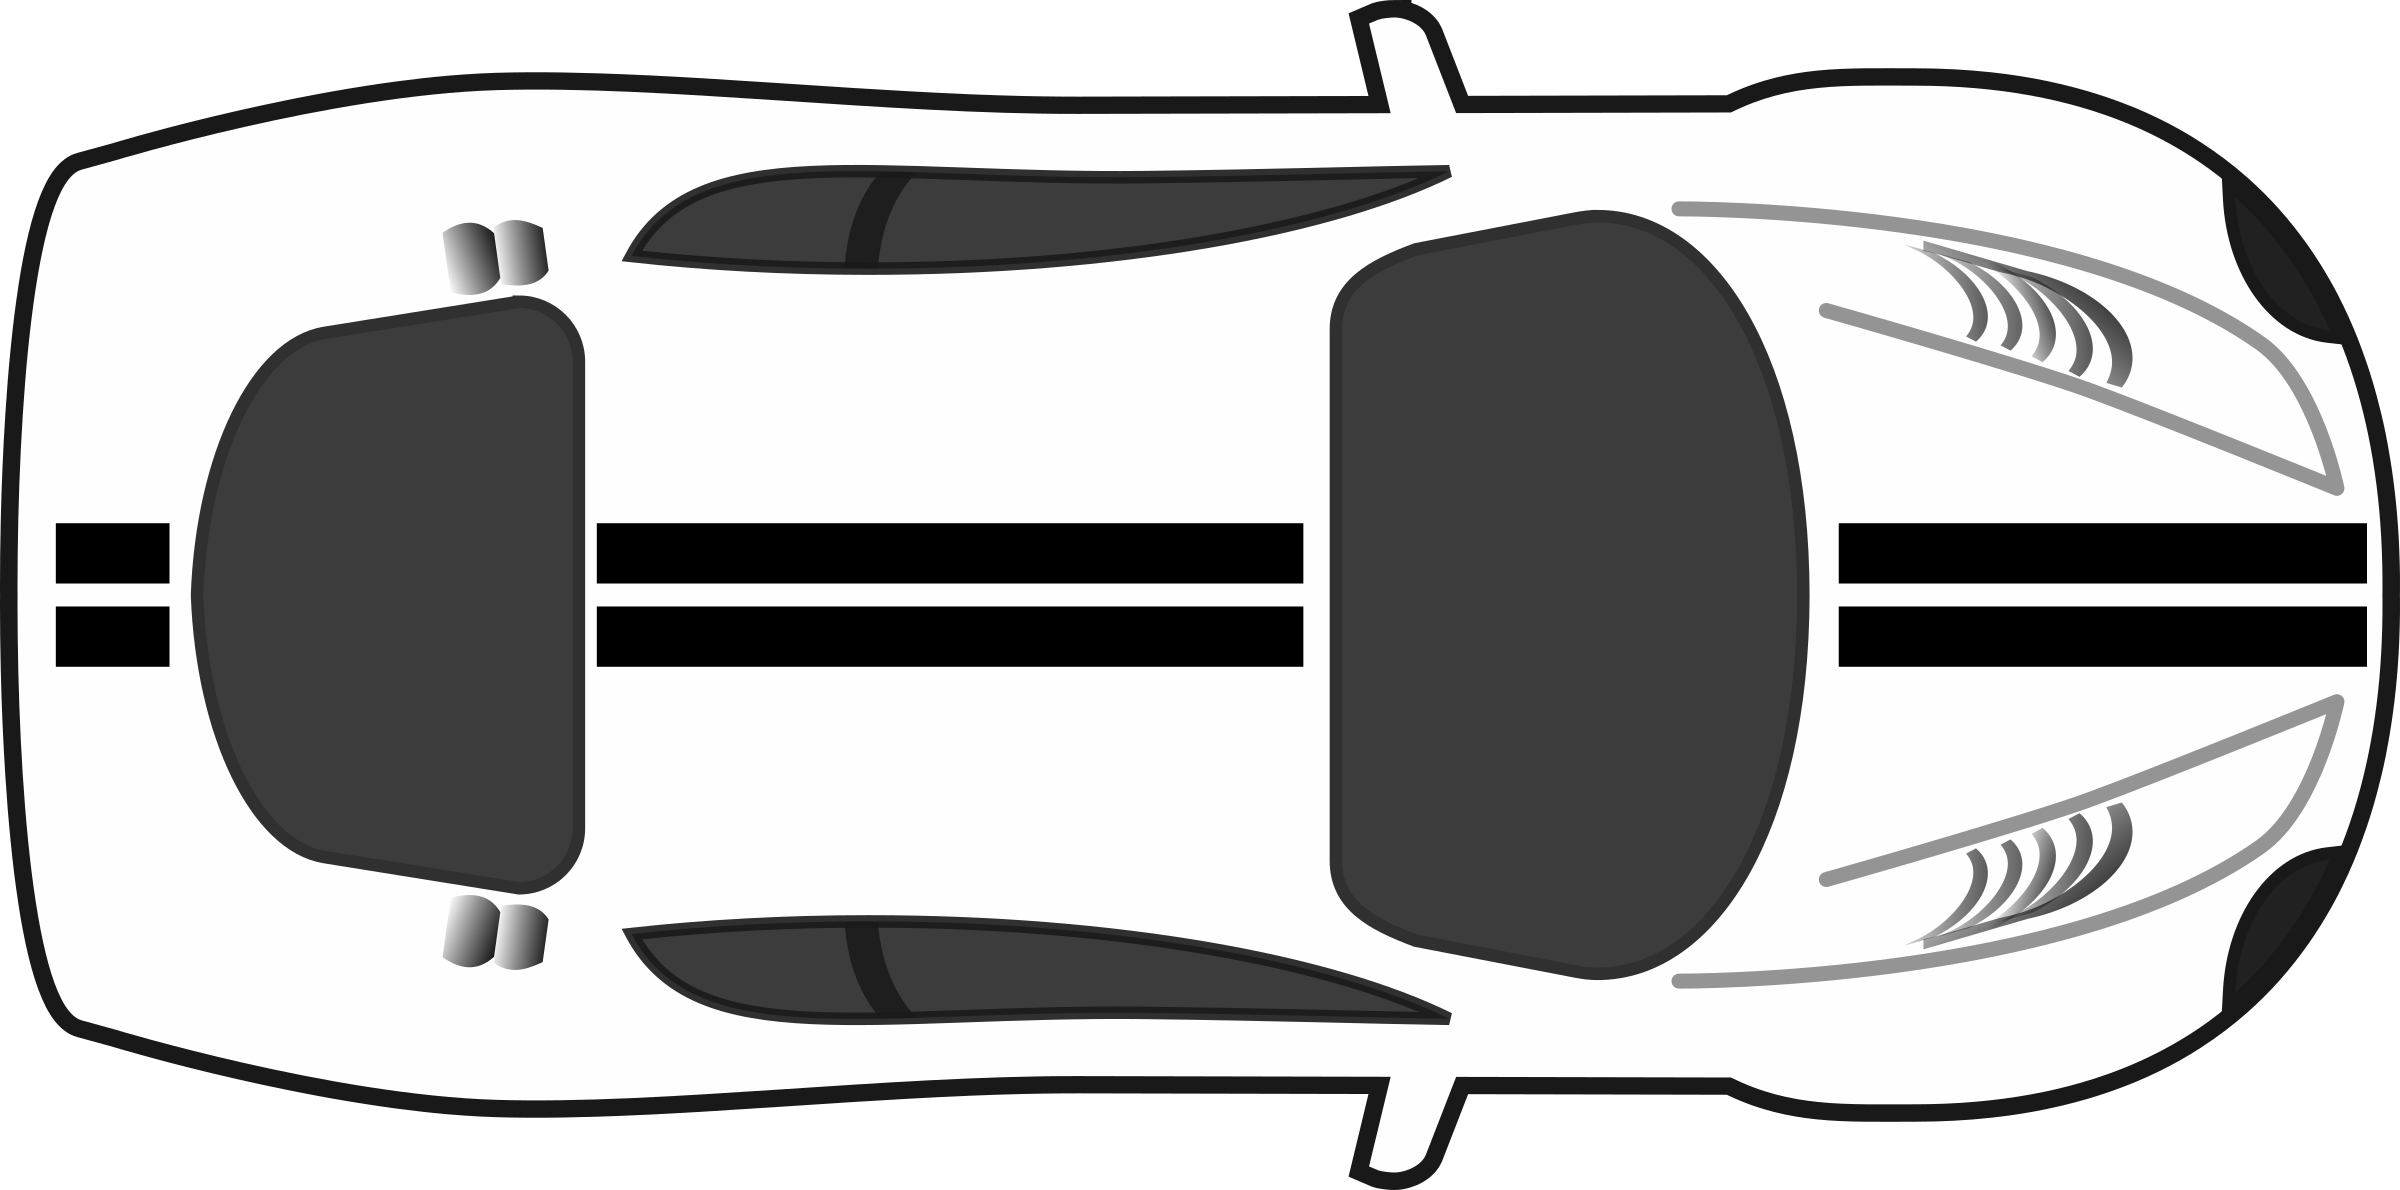 Sports car black and white clipart banner free library Black And White Race Car PNG Transparent Black And White Race Car ... banner free library